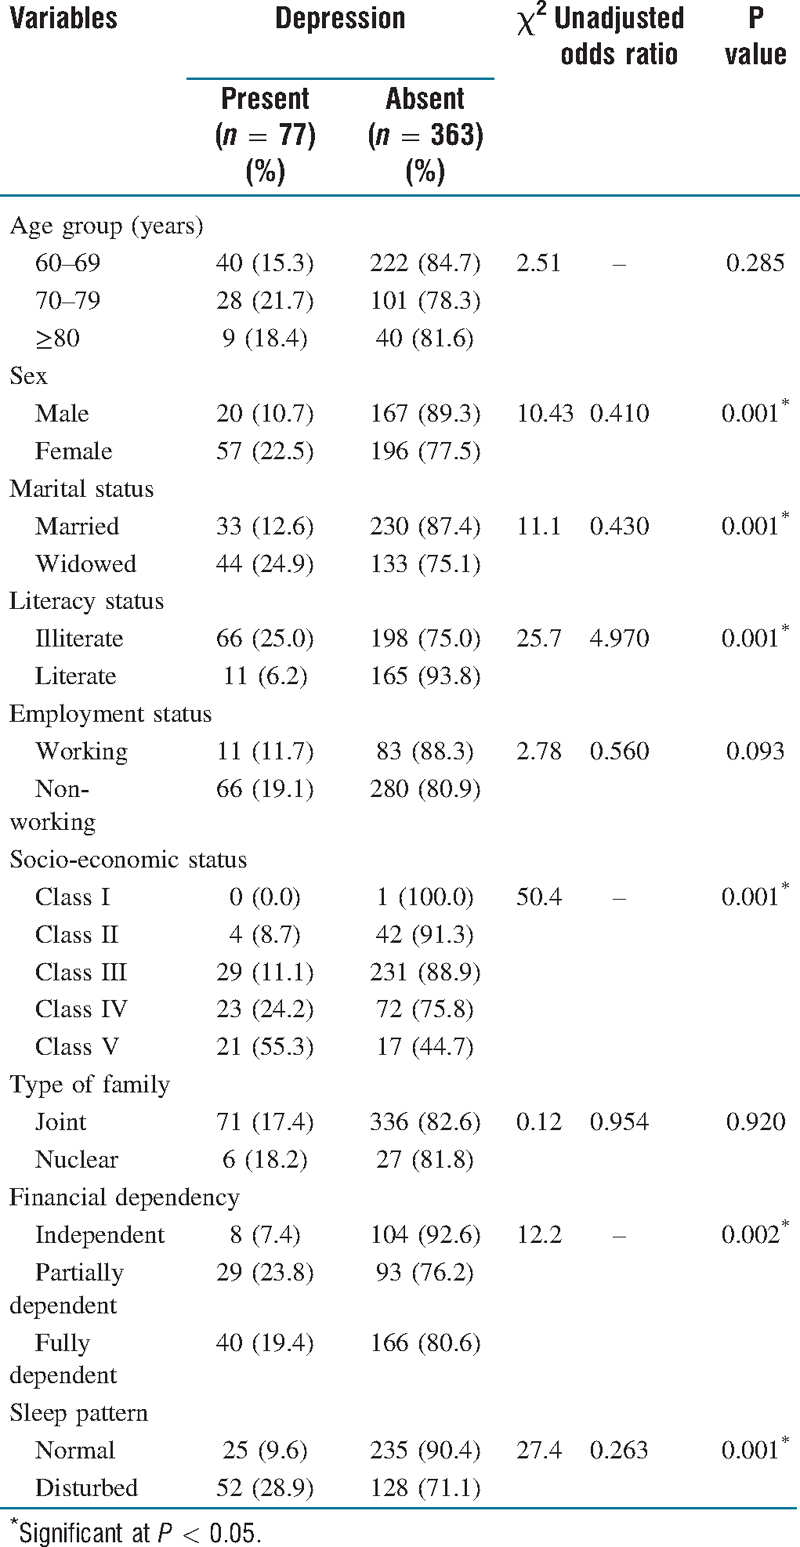 Table 2: Association between depression and risk factors